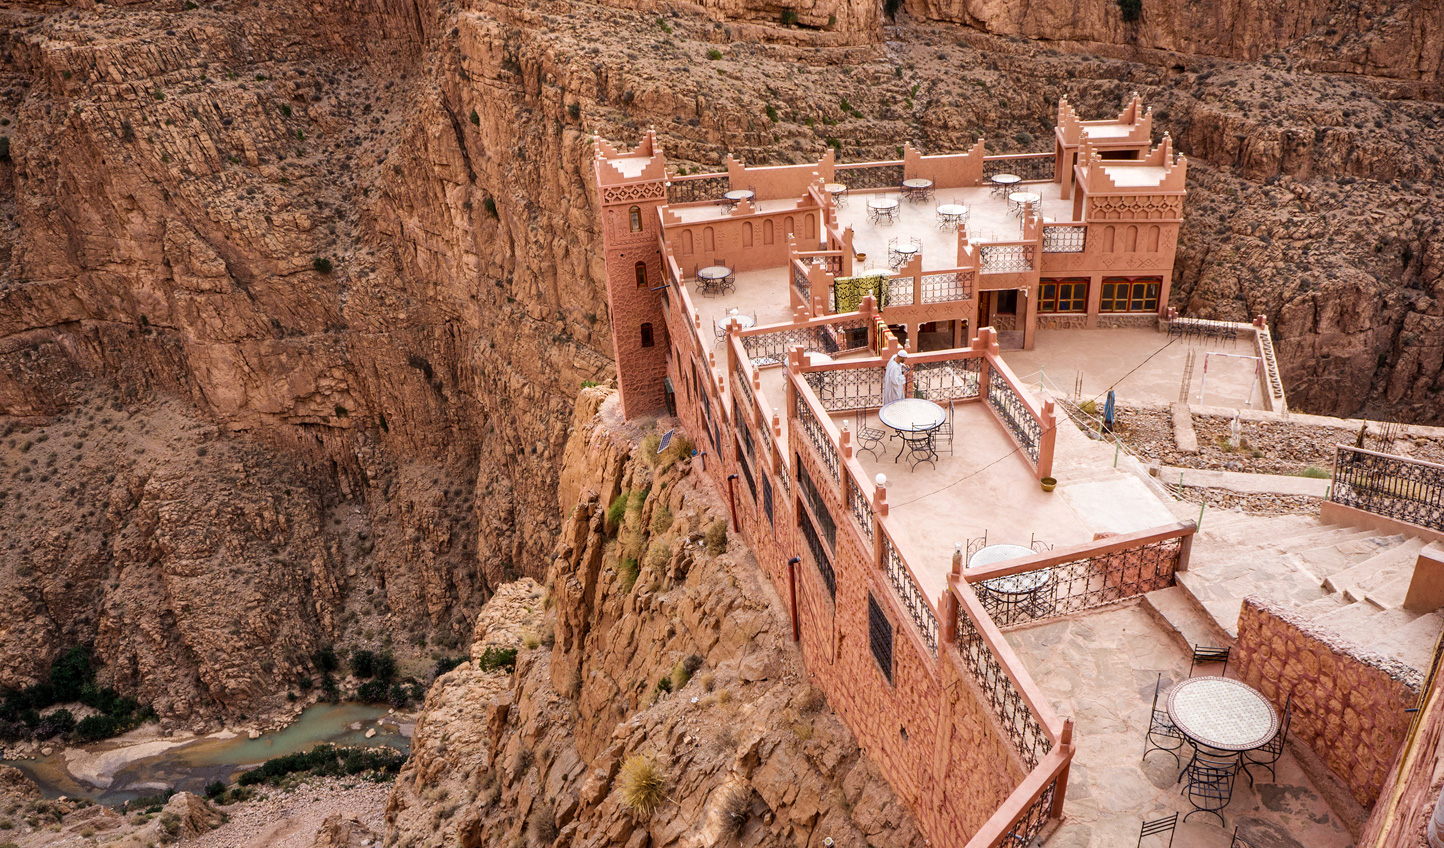 Hike through the Dades Valley in search of the perfect lunch spot